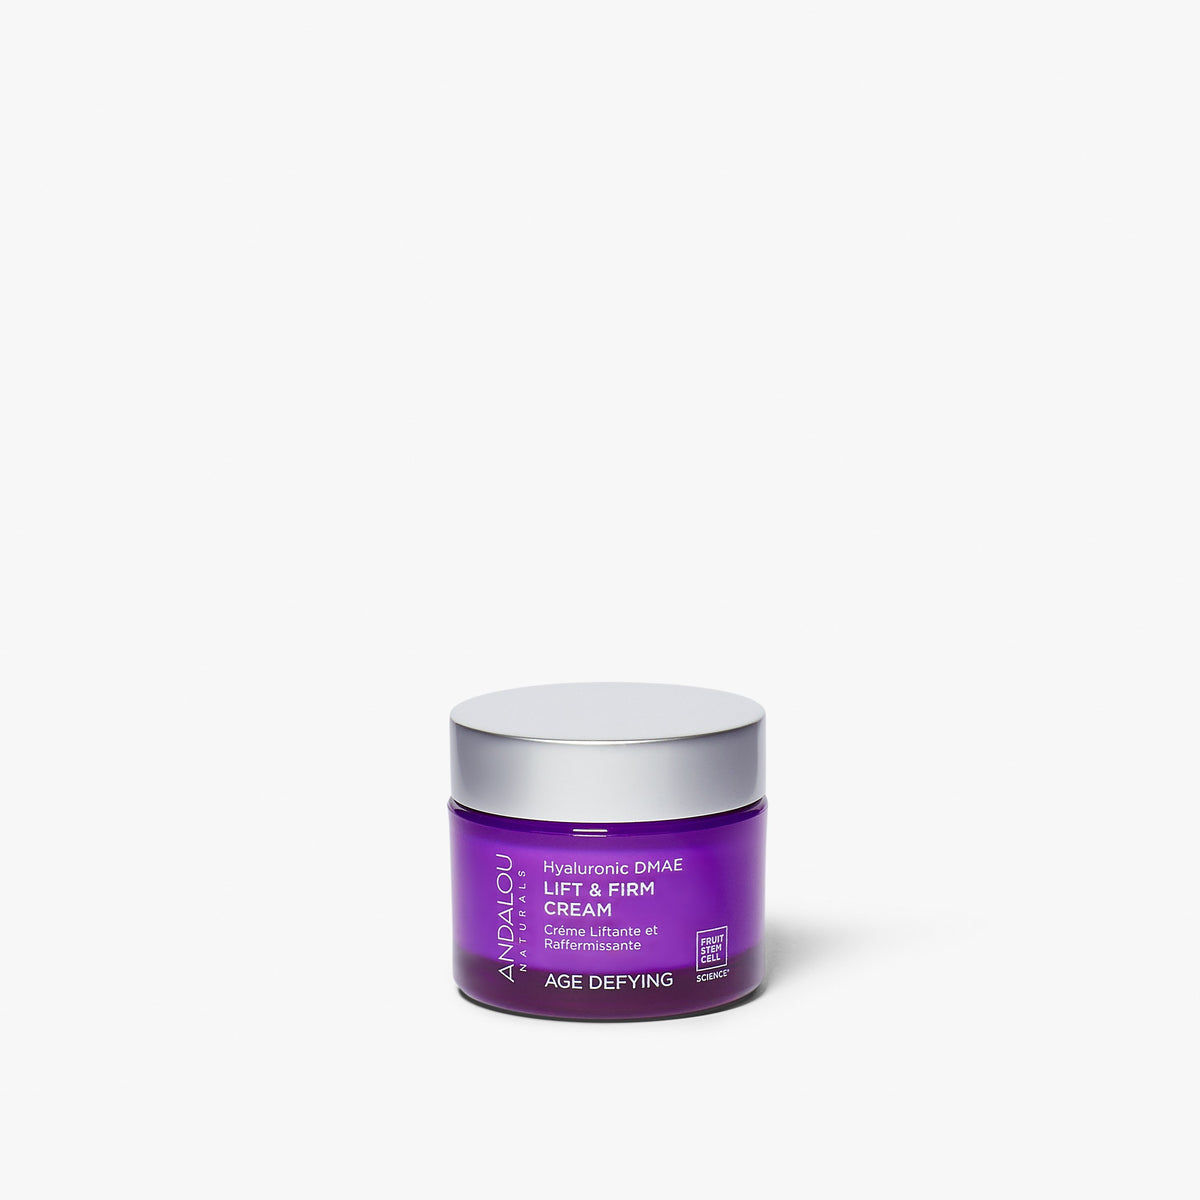 Andalou Naturals Age Defying Hyaluronic DMAE Lift & Firm Cream jar